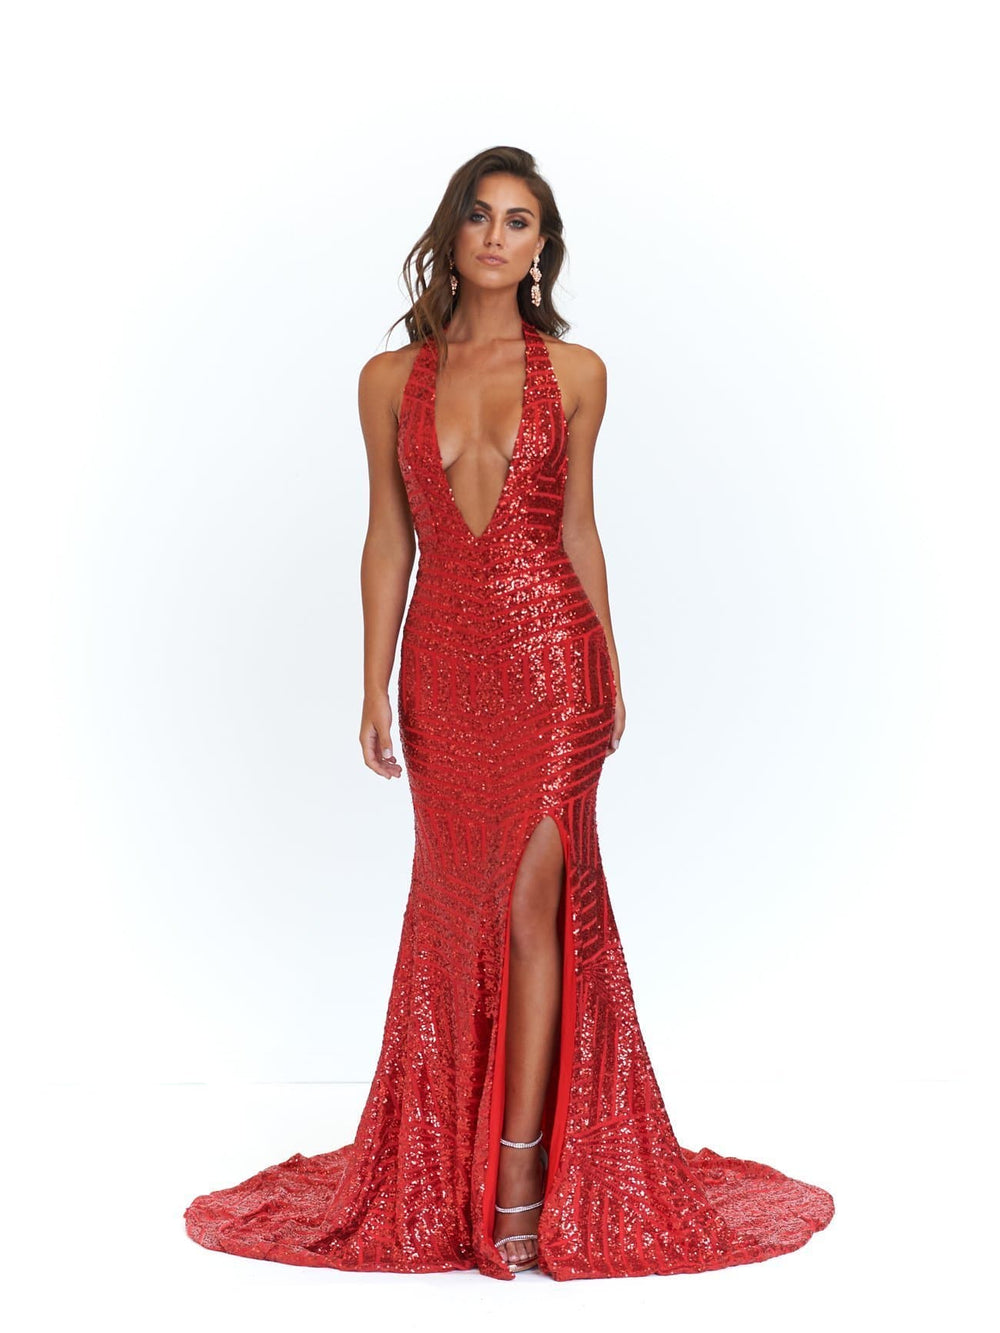 929ef07ac8bb9 A N Cleopatra - Red Sequins Dress with V Neck and Low Back – A N ...